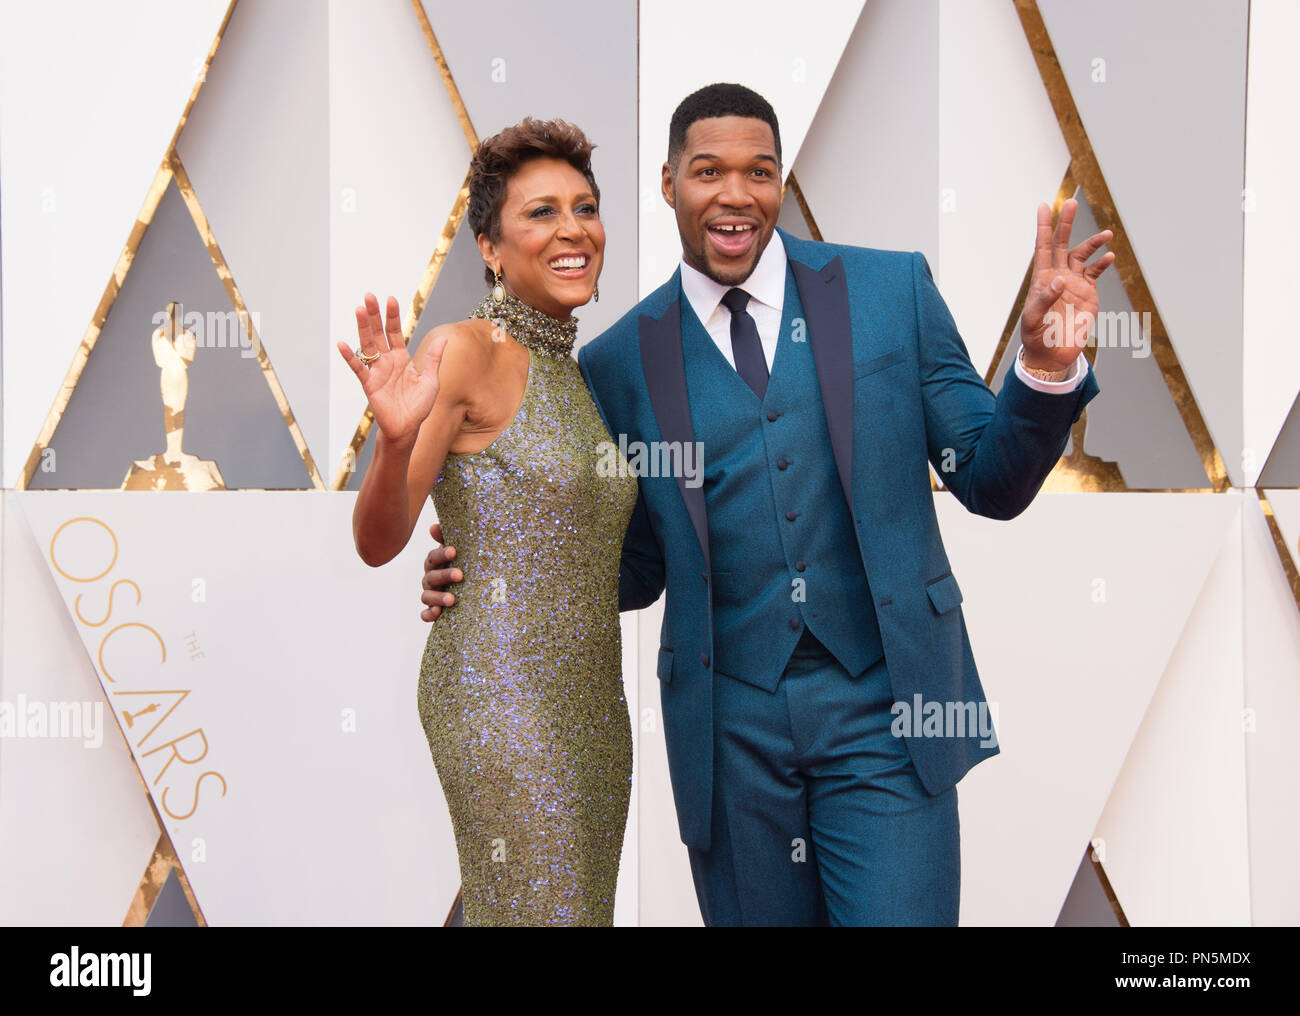 TV personalities Robin Roberts and Michael Strahan arrive at The 88th Oscars® at the Dolby® Theatre in Hollywood, CA on Sunday, February 28, 2016.  File Reference # 32854_057THA  For Editorial Use Only -  All Rights Reserved - Stock Image